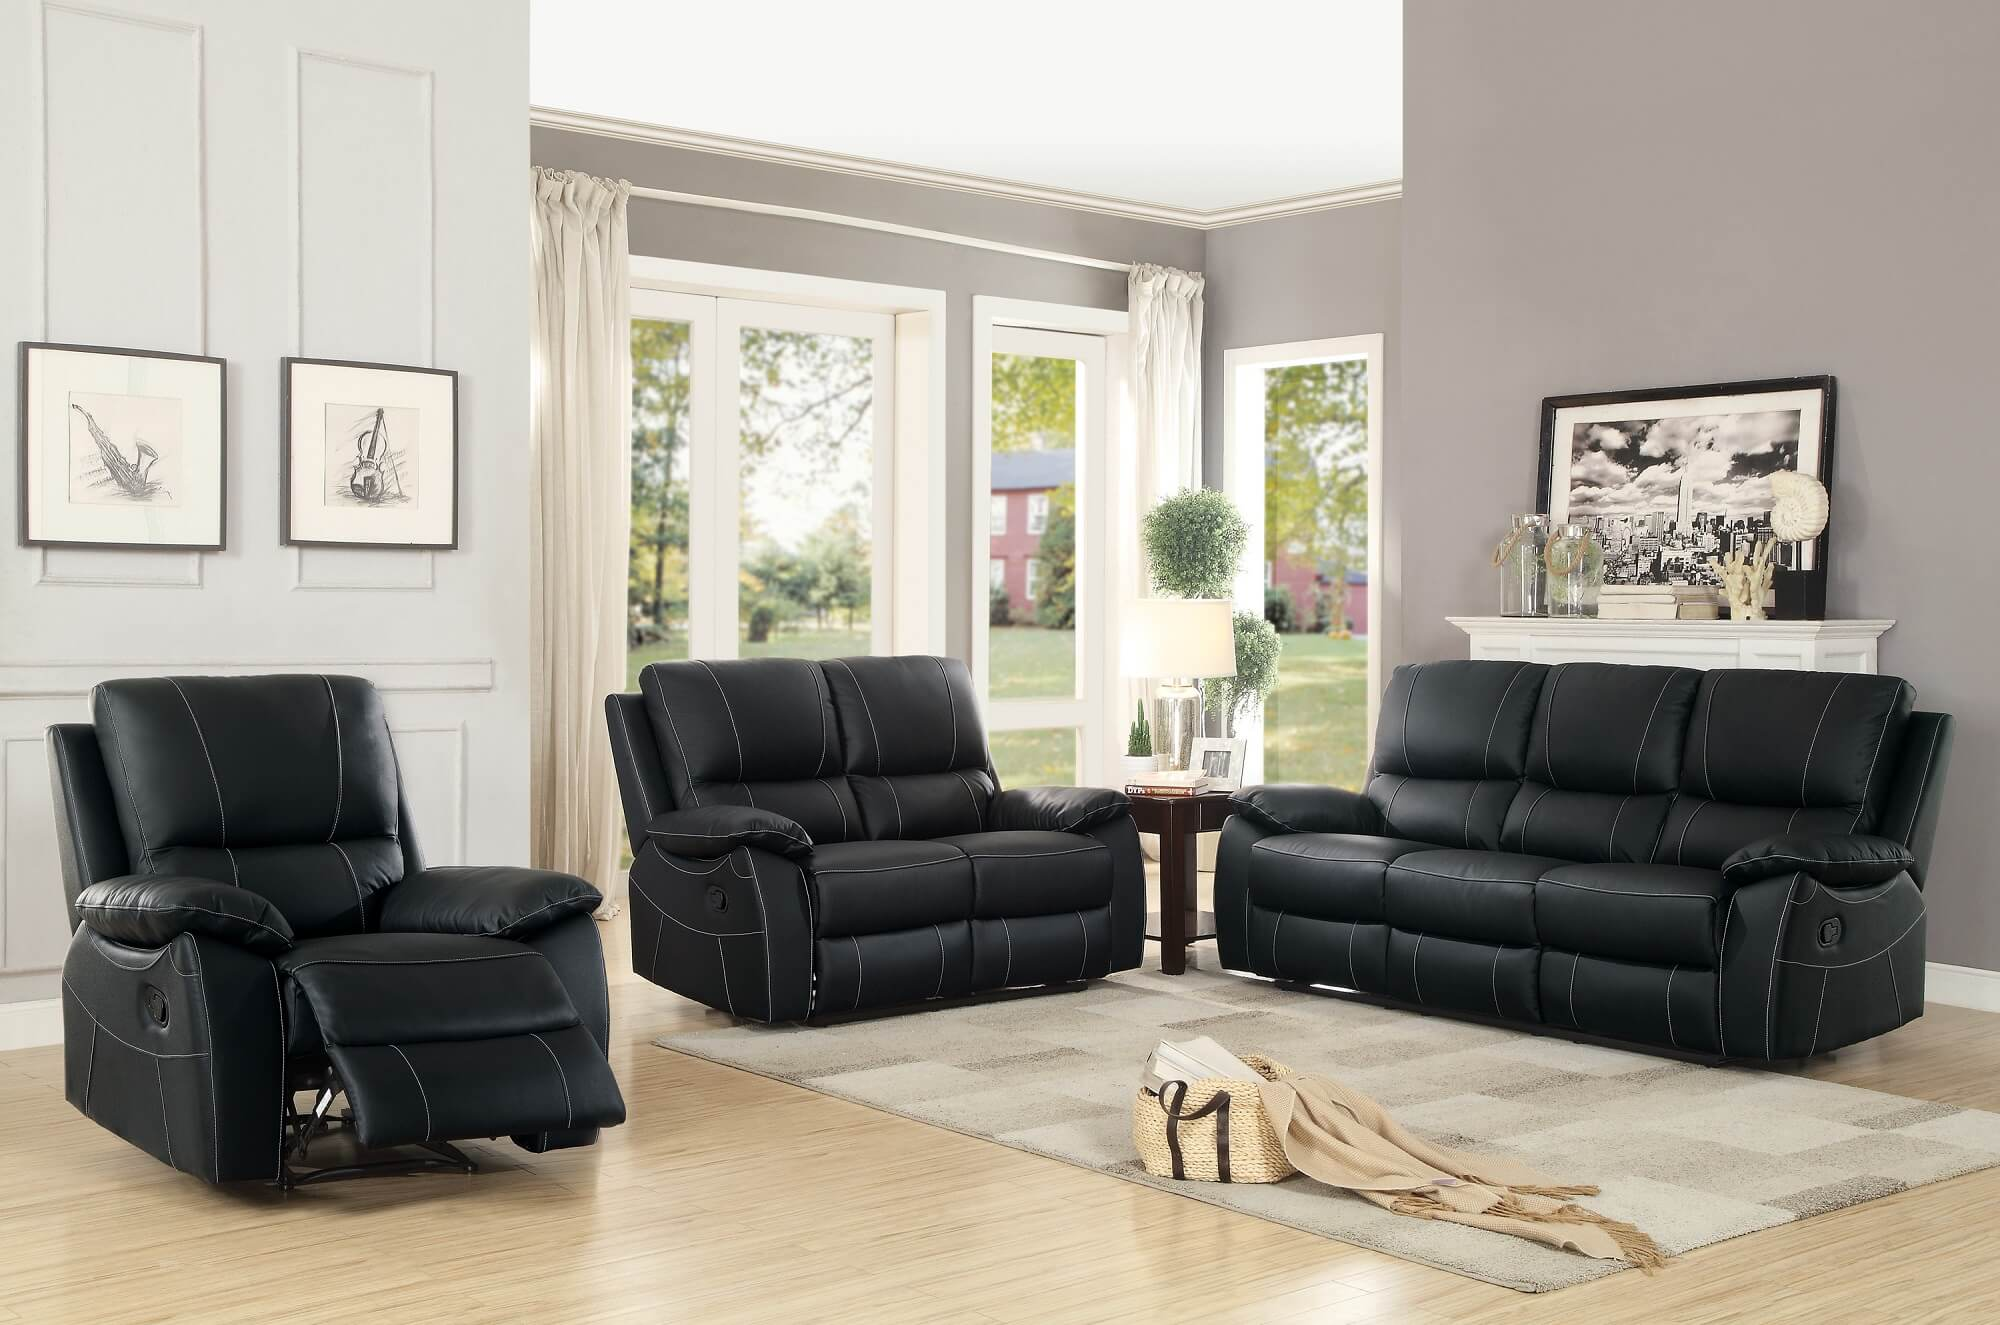 Greeley Top Grain Black Leather Reclining Loveseat By Homelegance